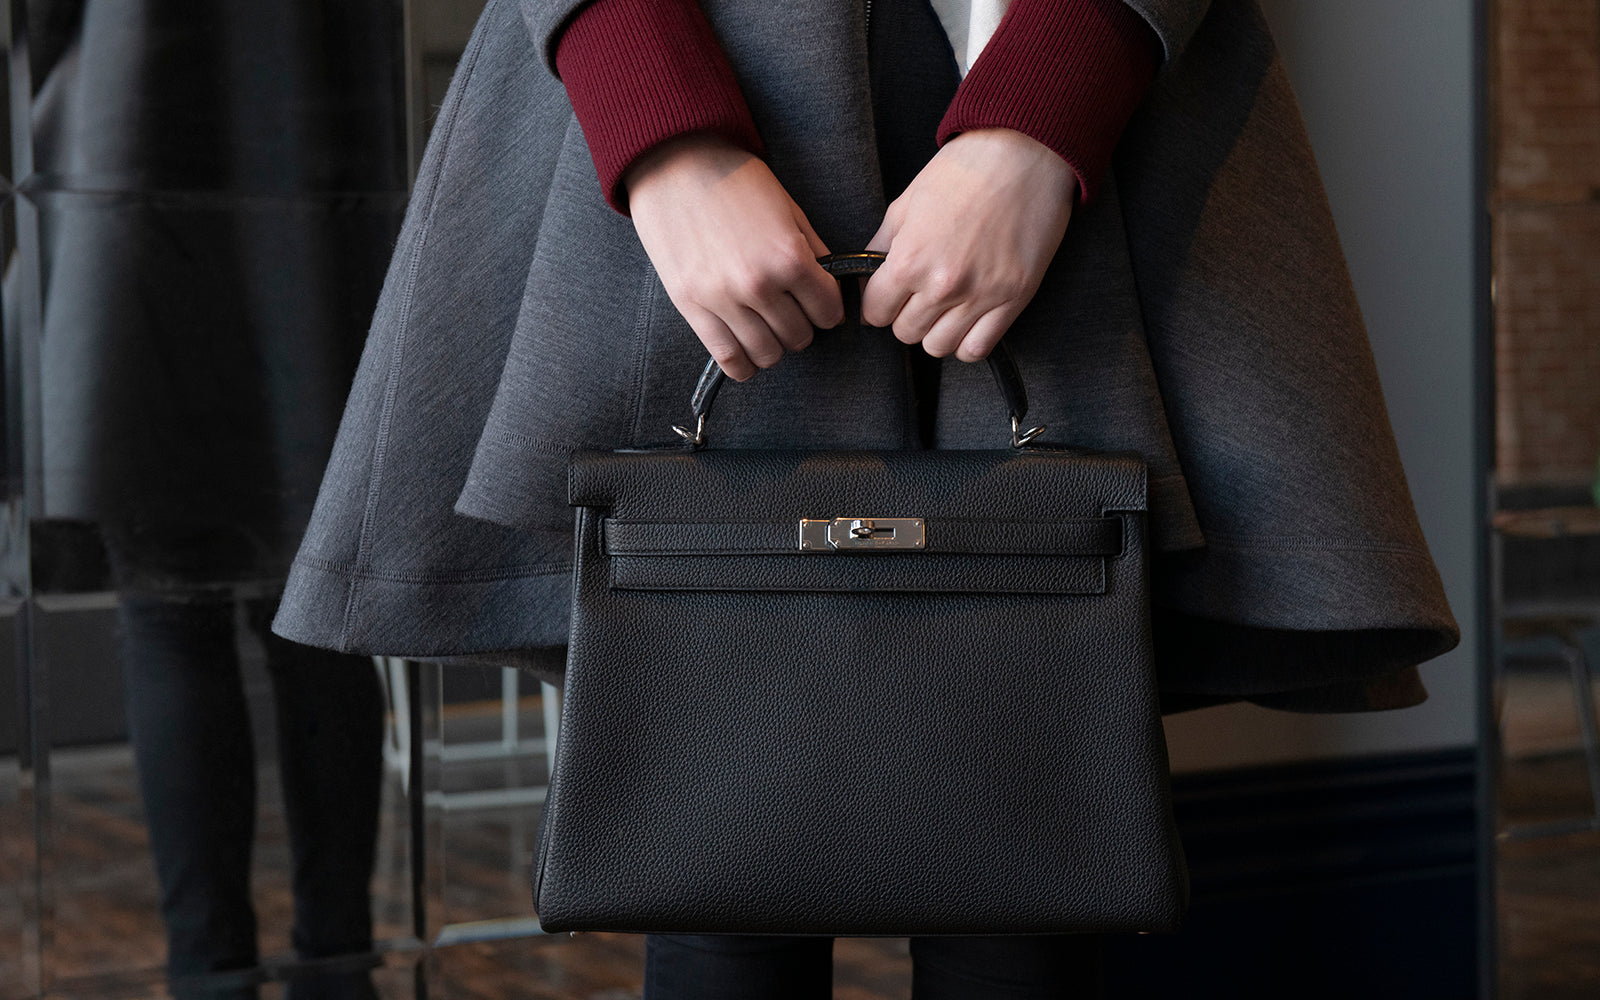 Shop authentic Hermes handbags and accessories for less